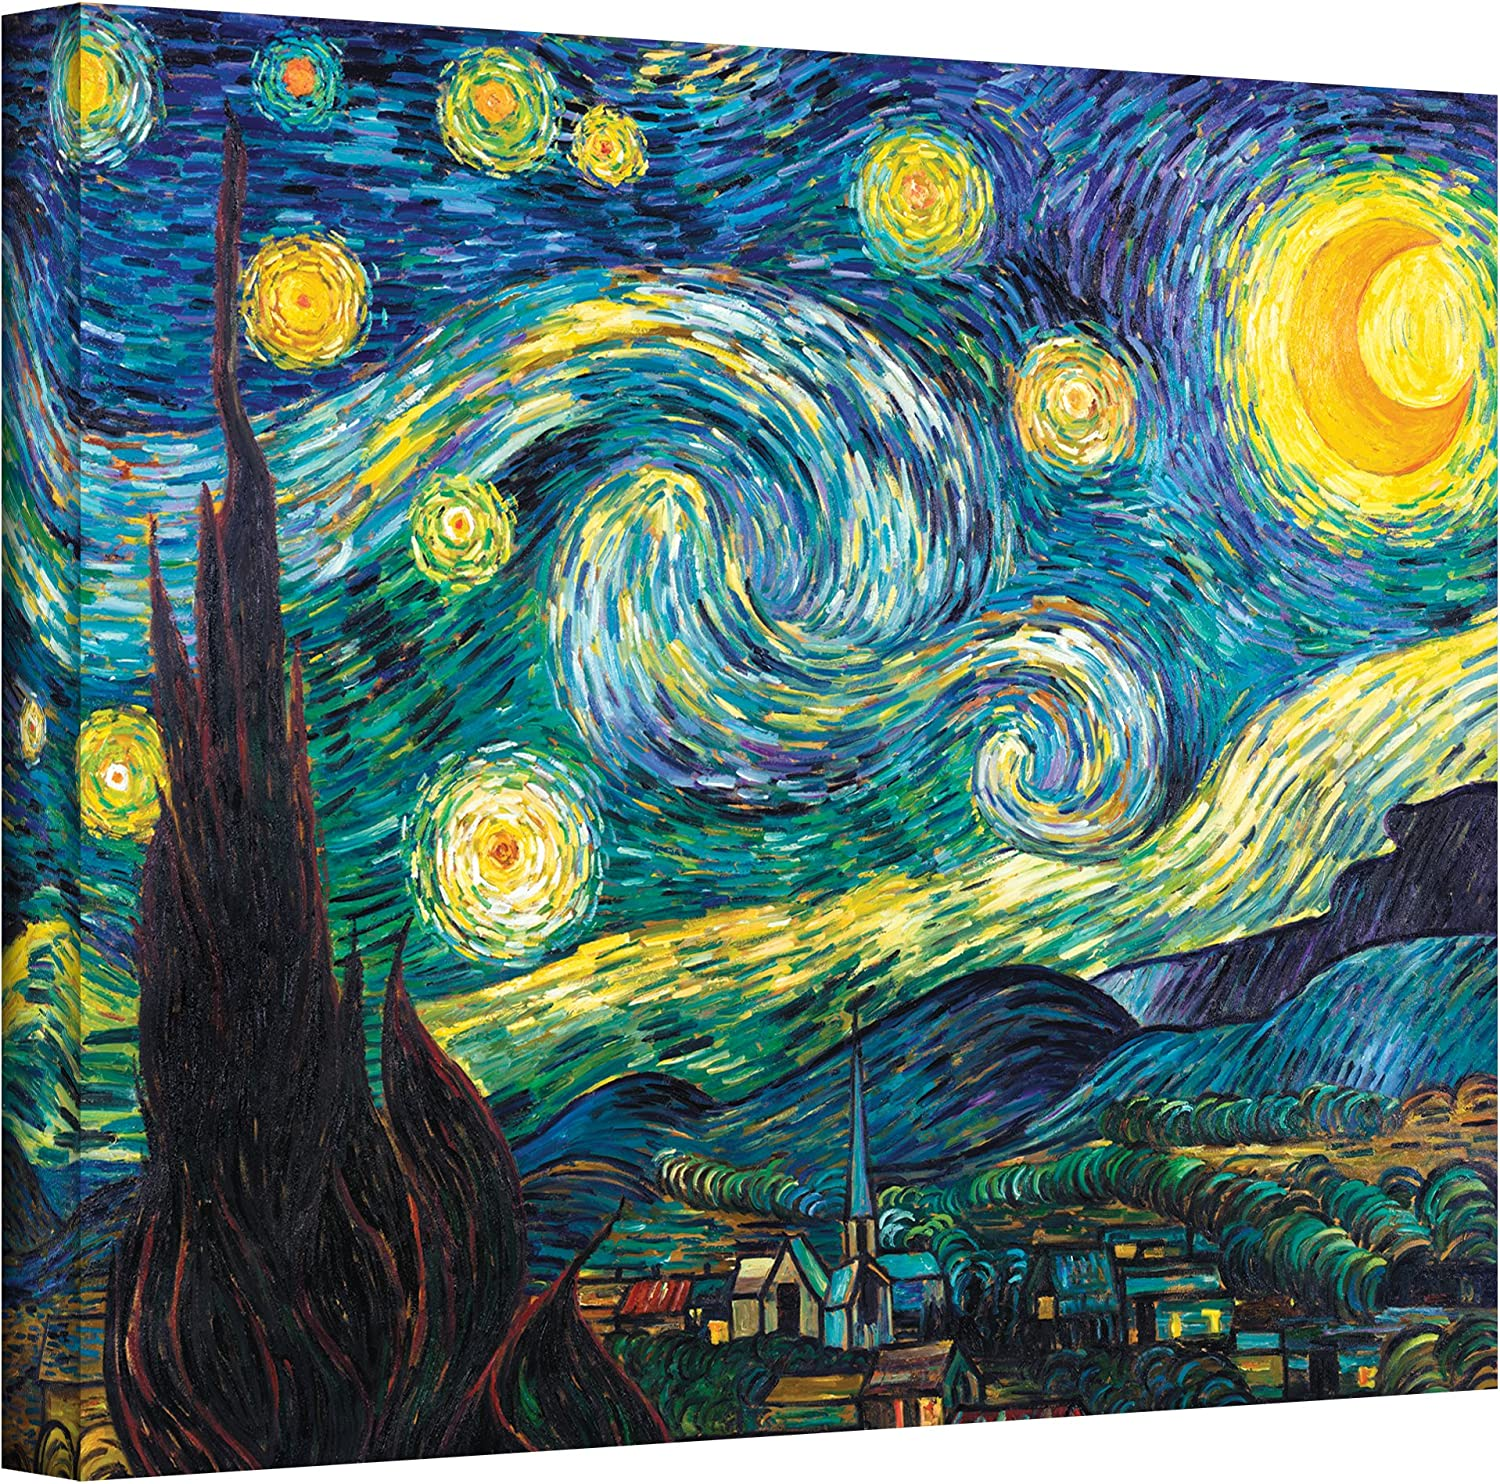 ArtWall Starry Night by Vincent Van Gogh Gallery Wrapped Canvas Art, 36 by 48-Inch